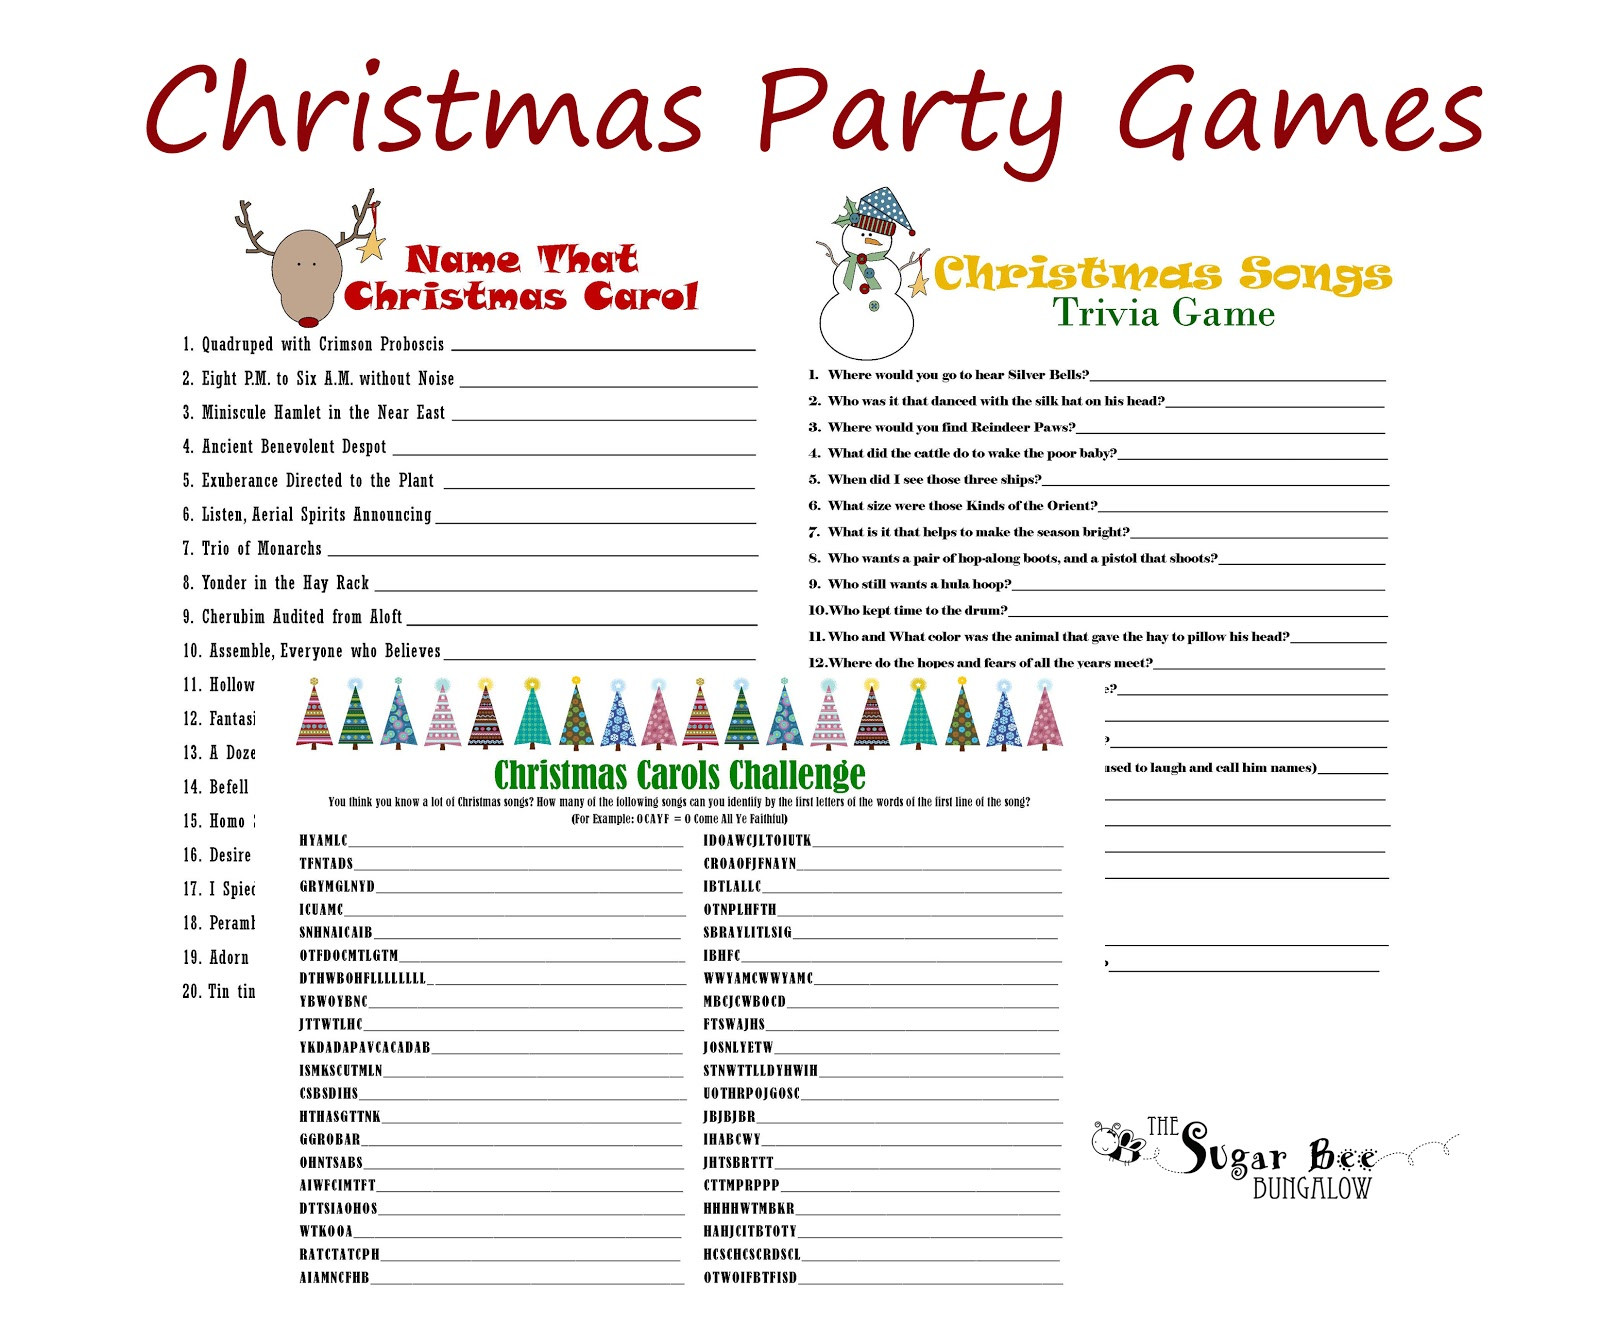 Christmas Party Activity Ideas  The Sugar Bee Bungalow December 2012